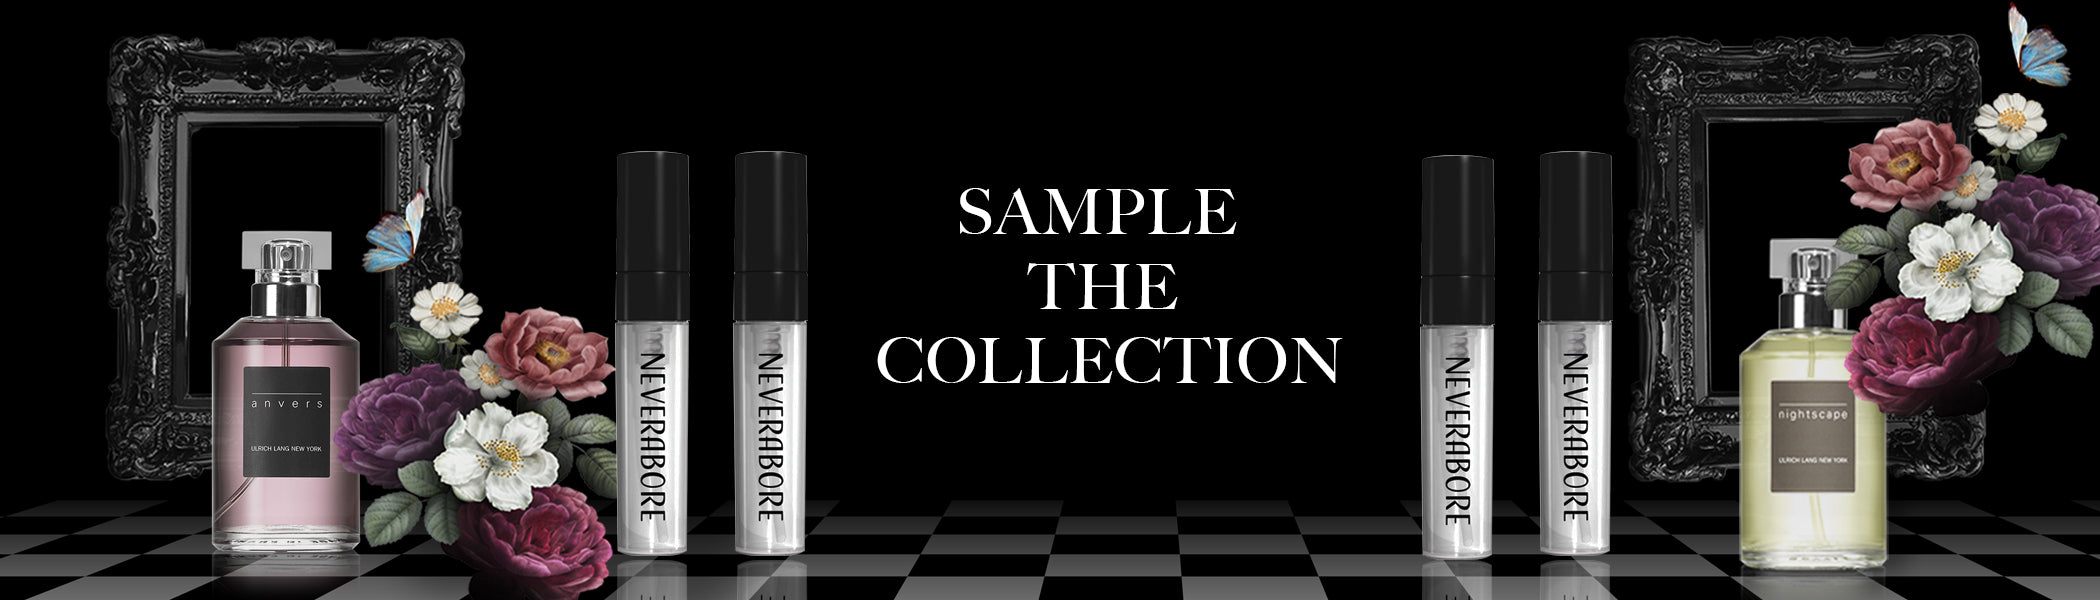 Ulrich Lang Sample Perfume Collection | Neverabore.com